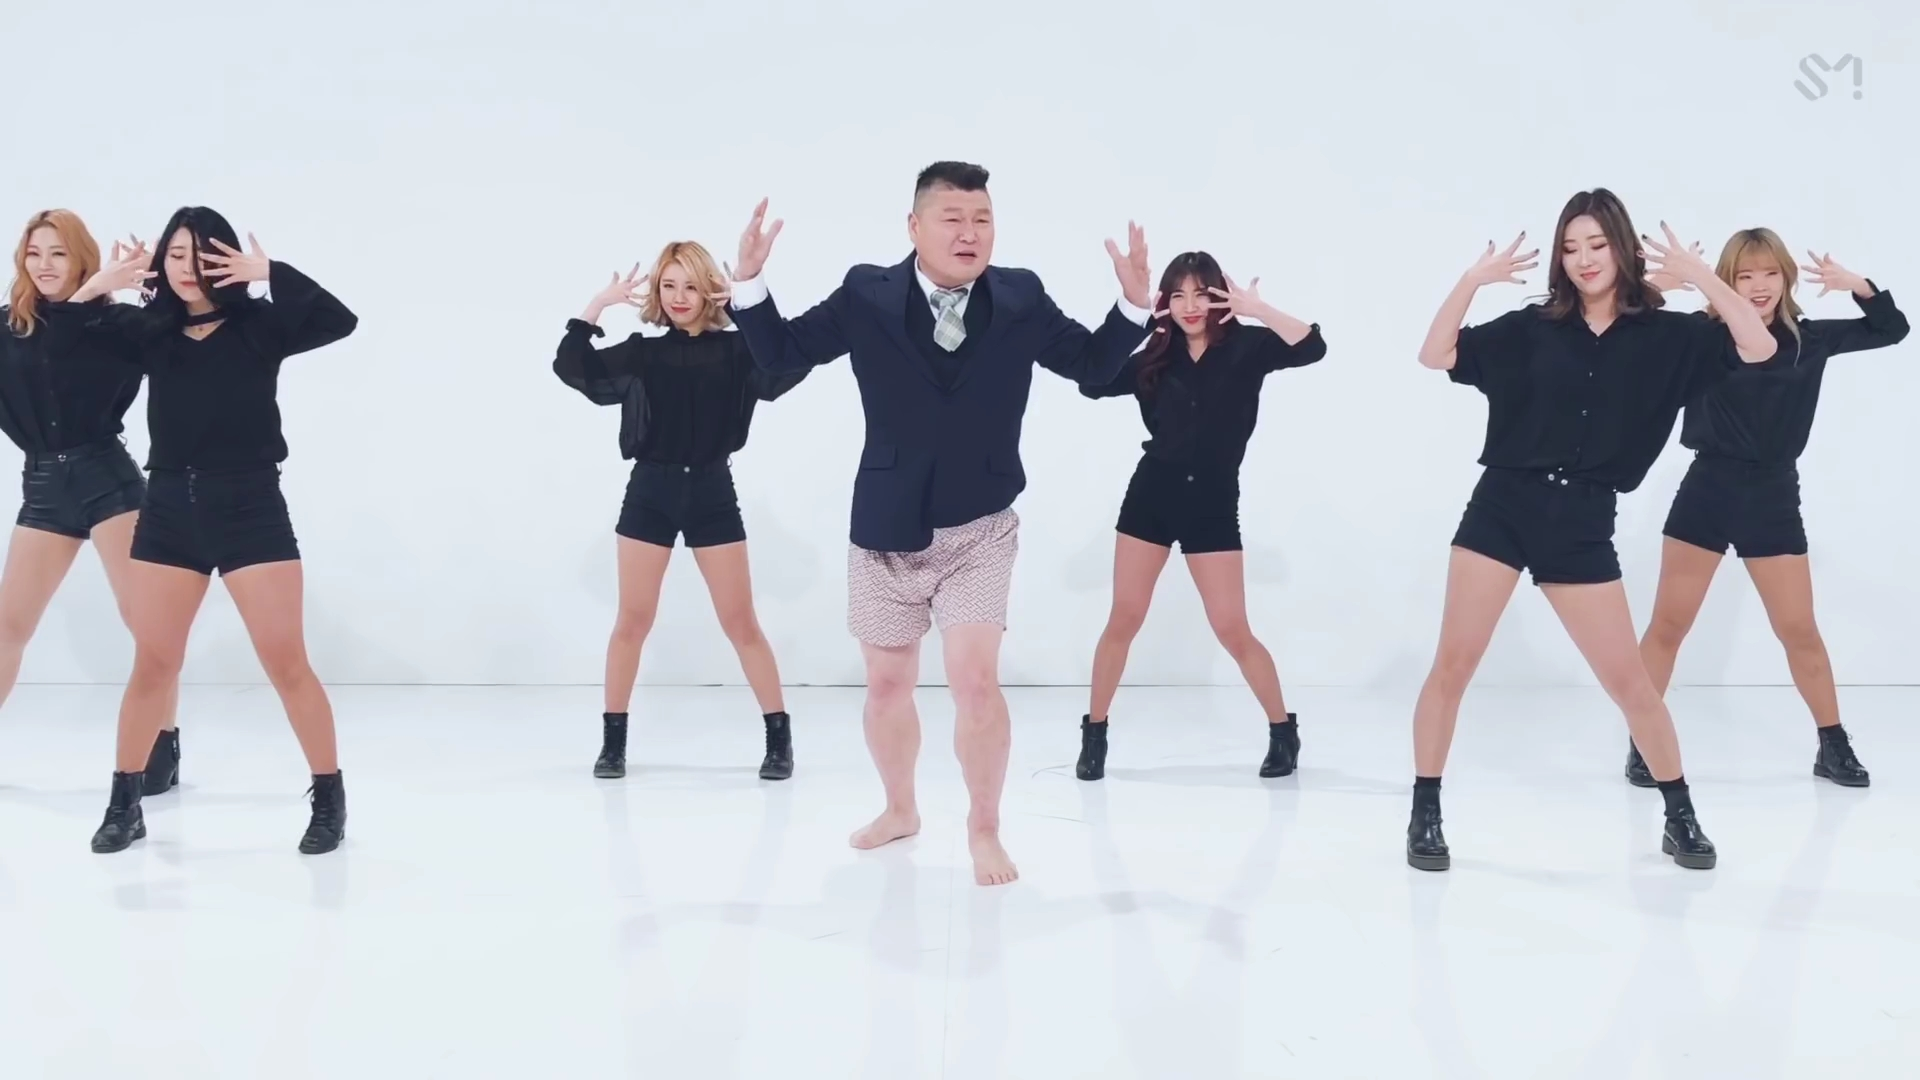 I Kicked My Luck Off - Kang Ho Dong, Hong Jin Young